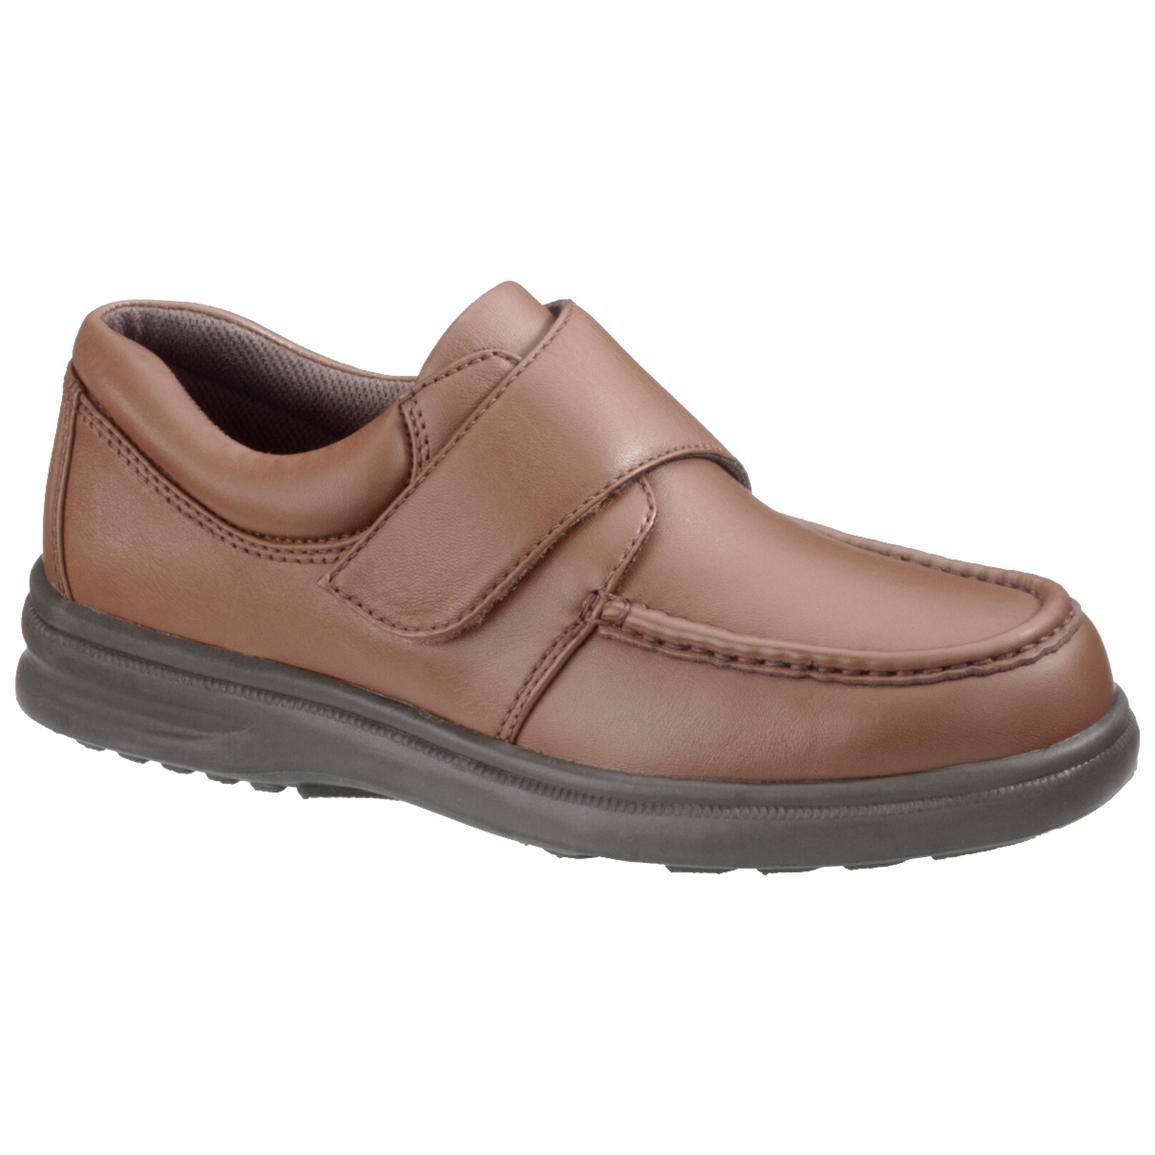 s hush puppies 174 gil shoes 153129 casual shoes at